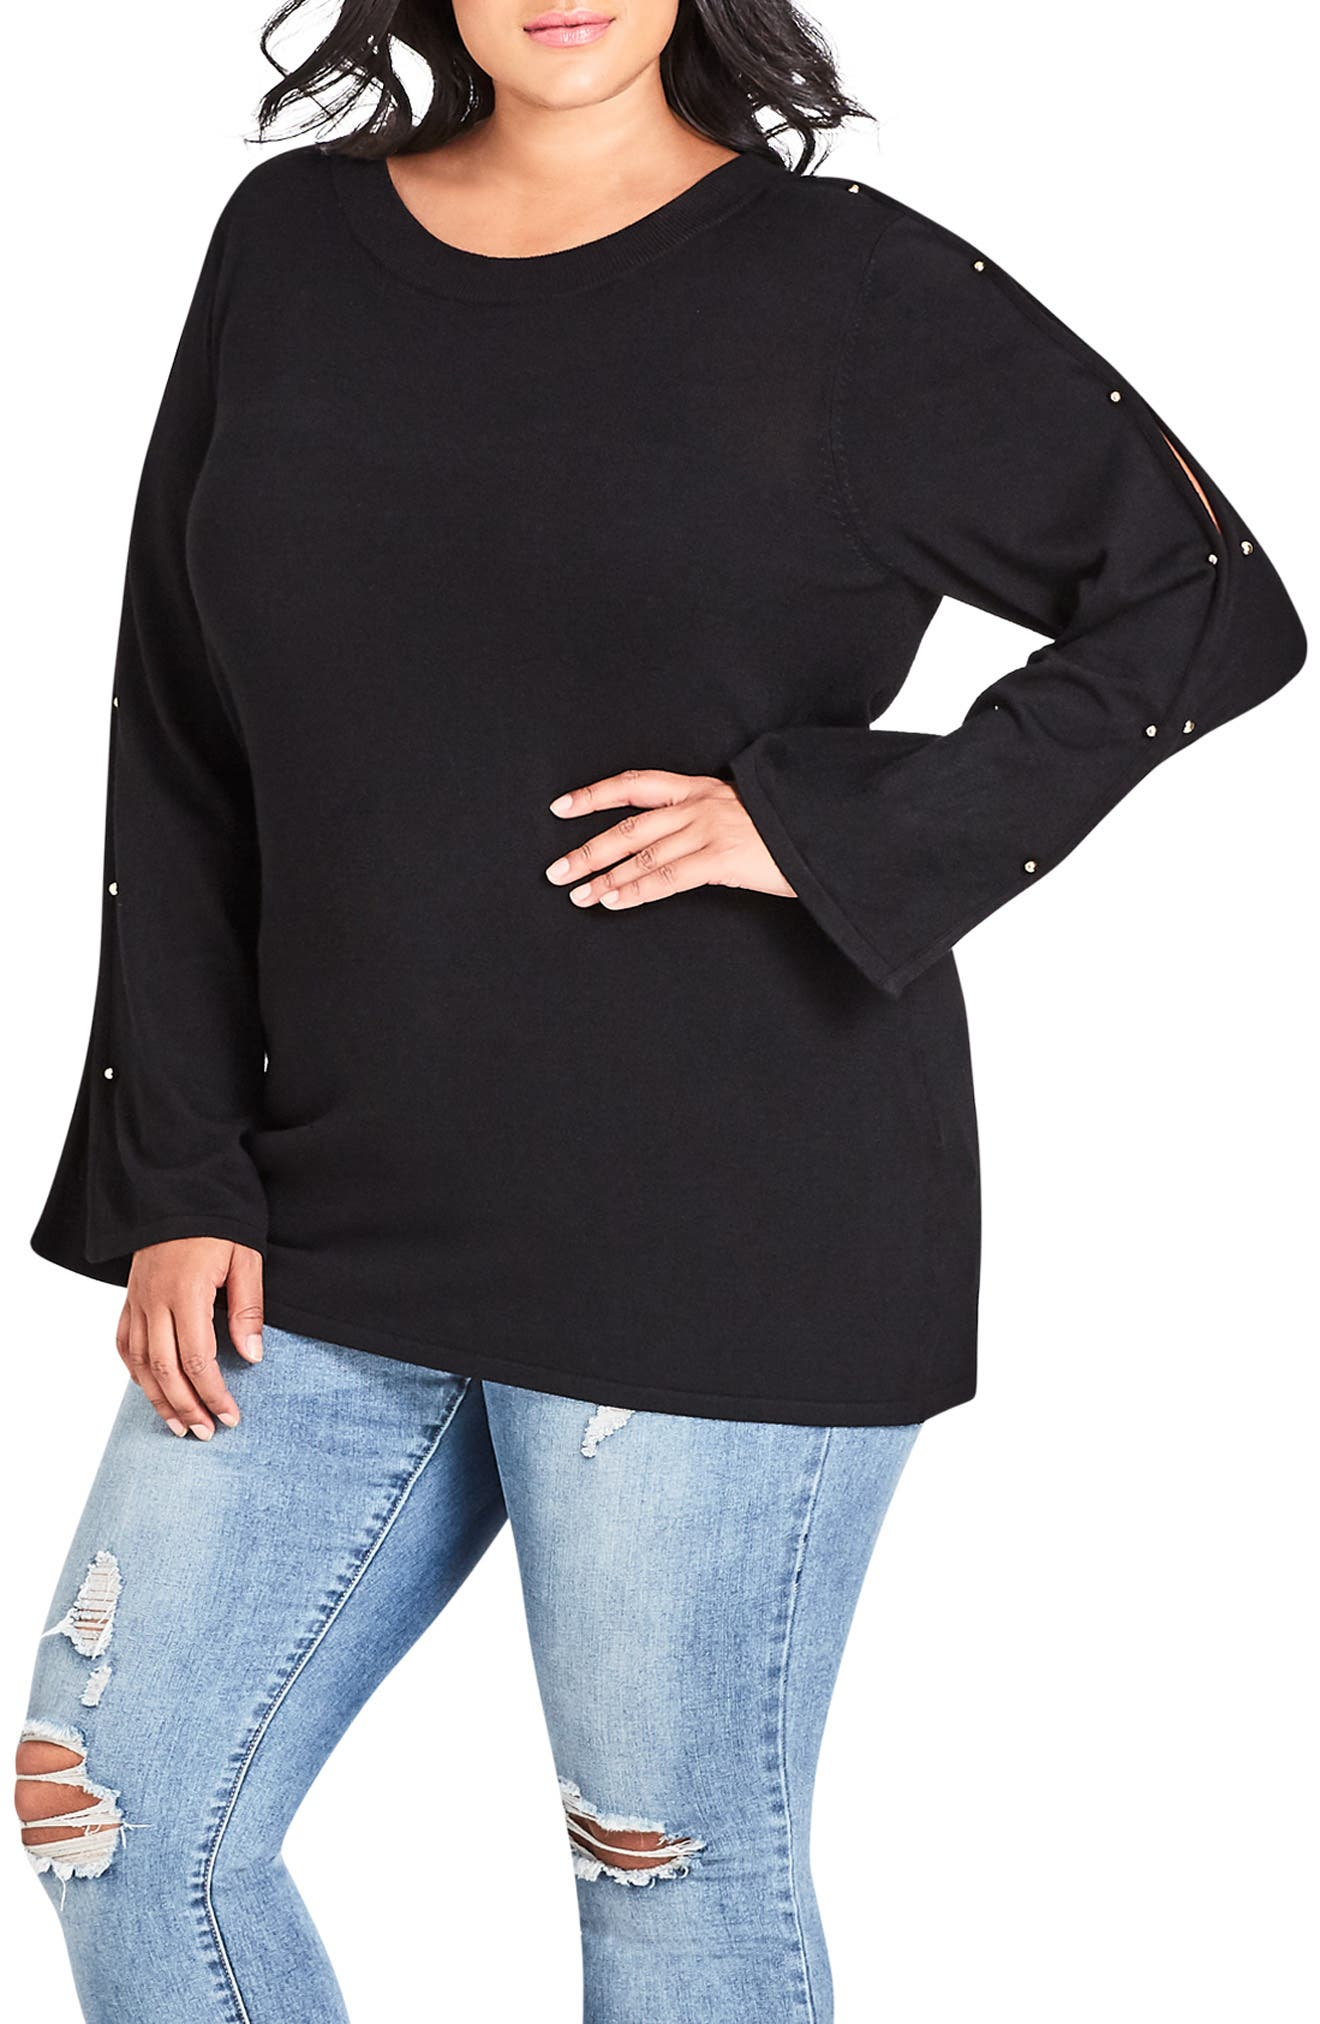 Barbell Sweater,                             Main thumbnail 1, color,                             001